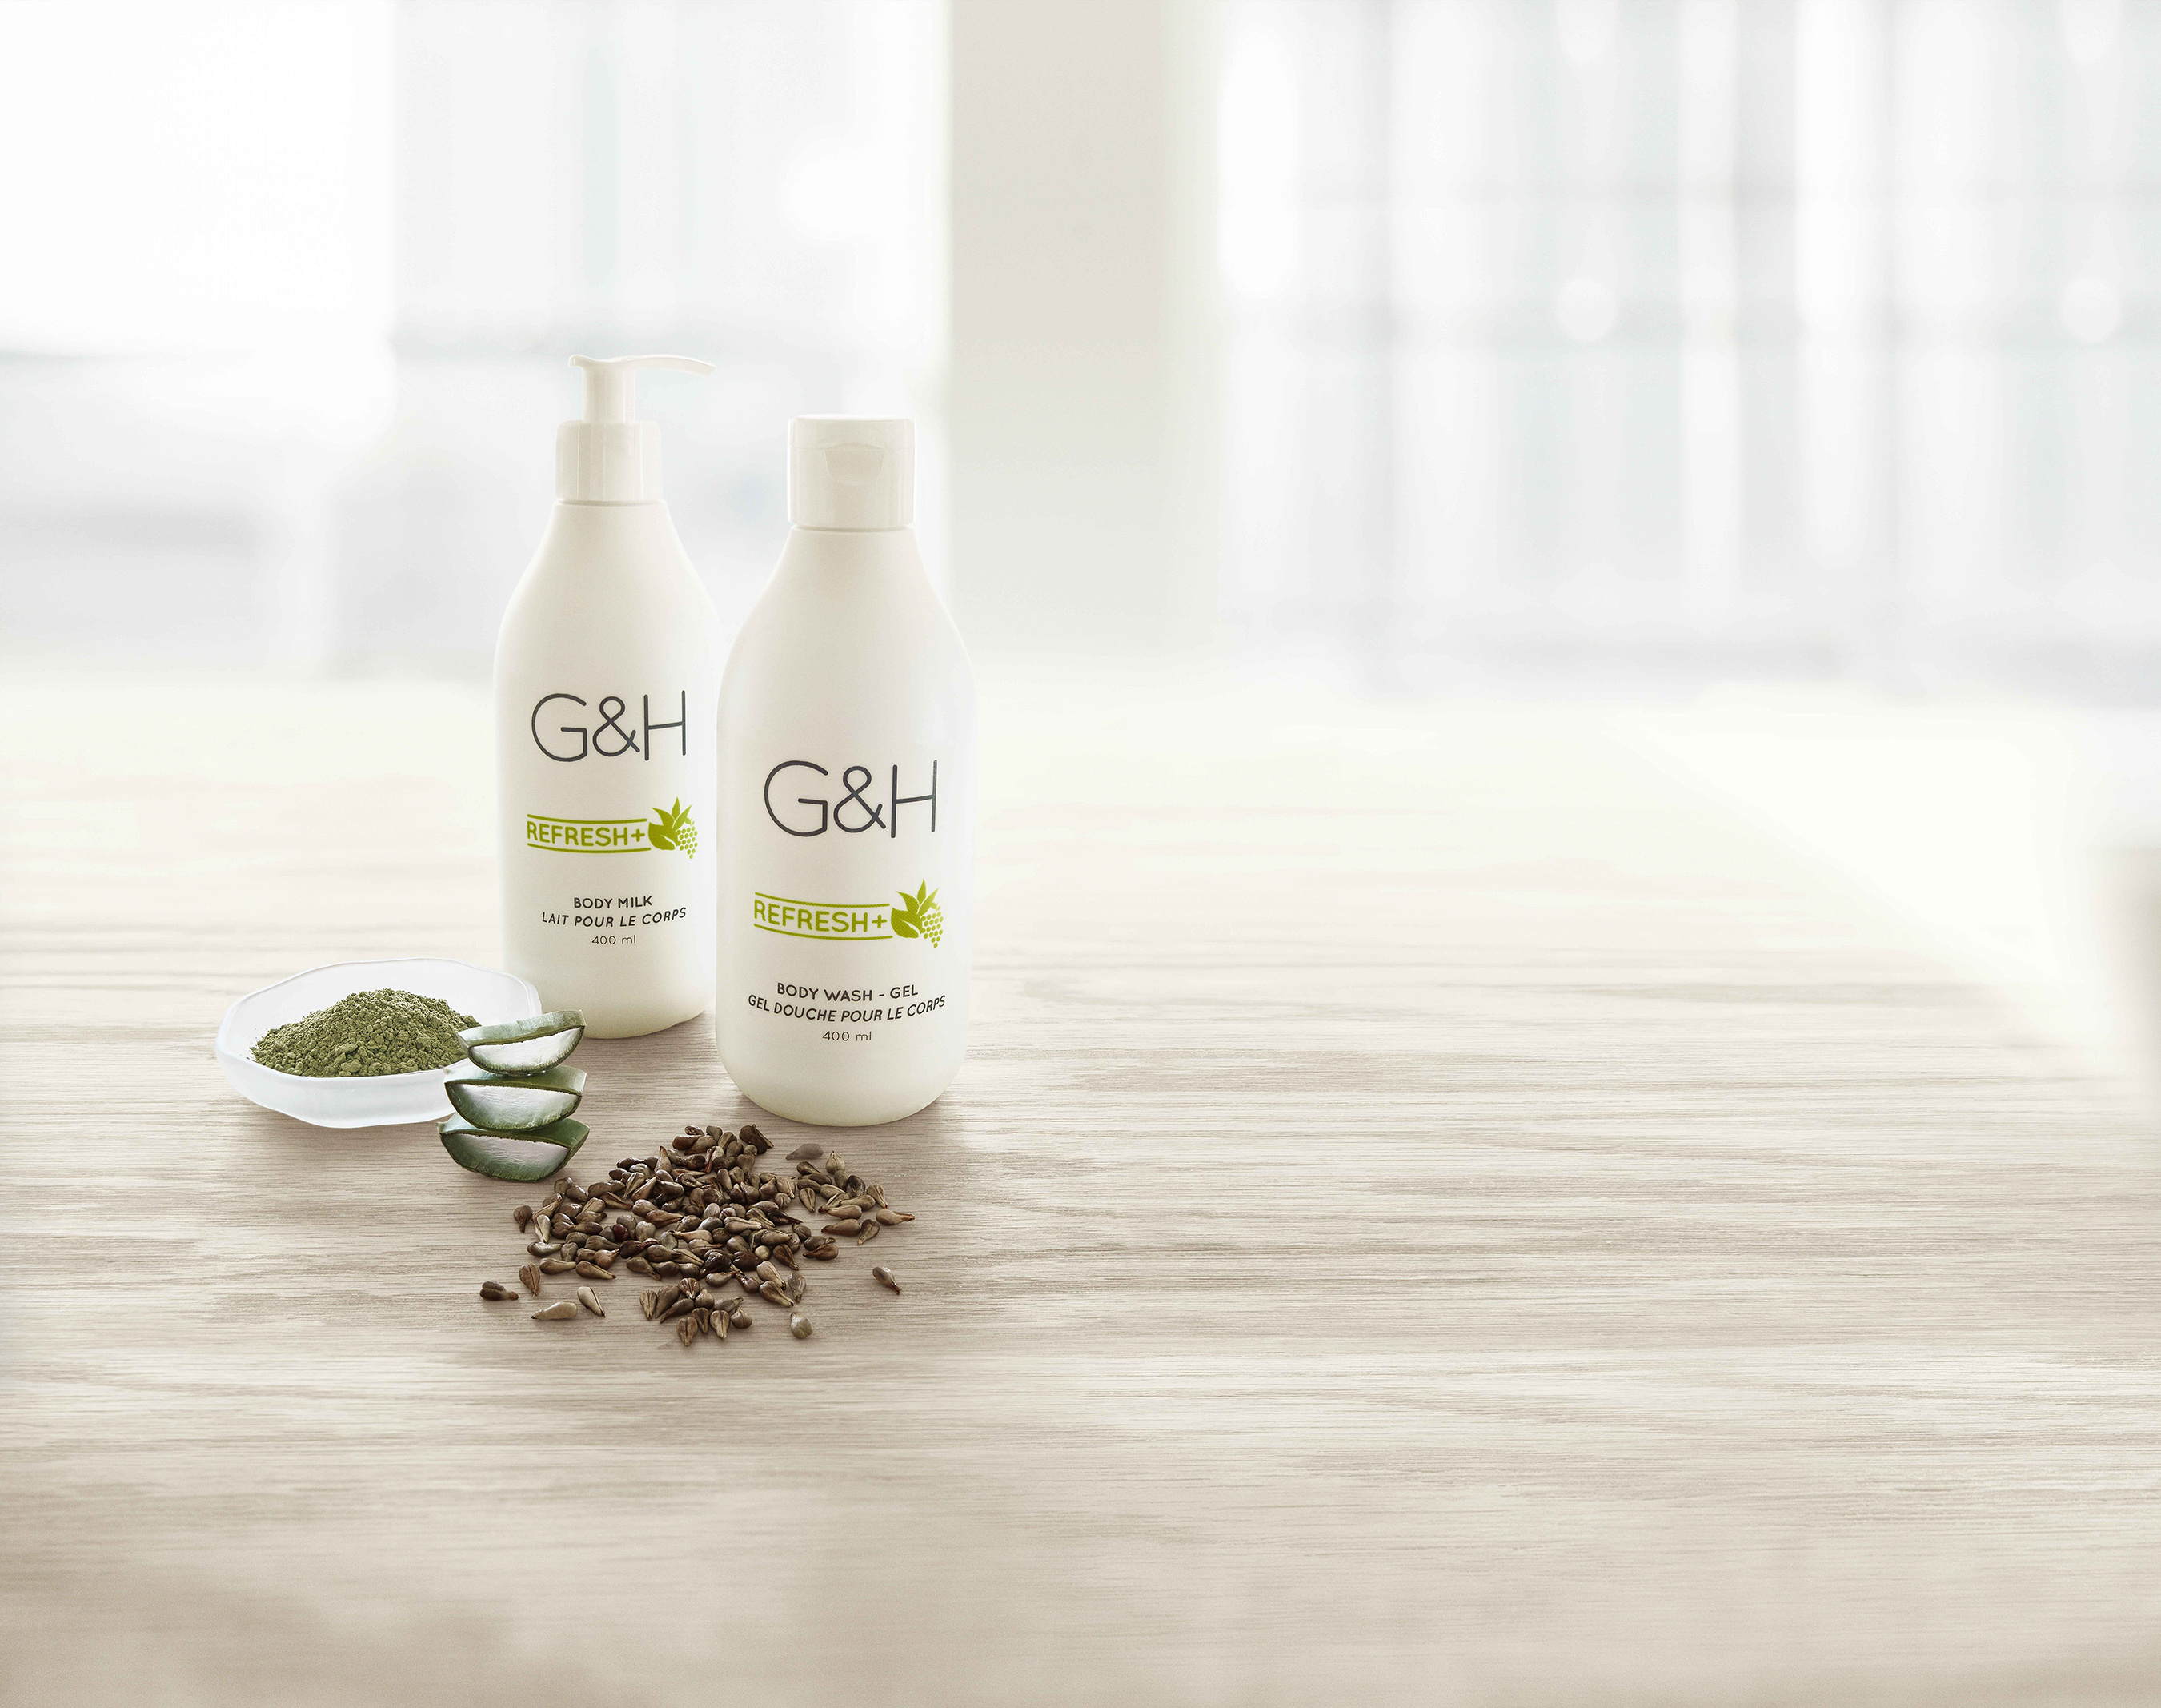 G&H Refresh+™ - Revitalizing body care refreshes, hydrates and soothes skin with lightweight and gentle formulas.